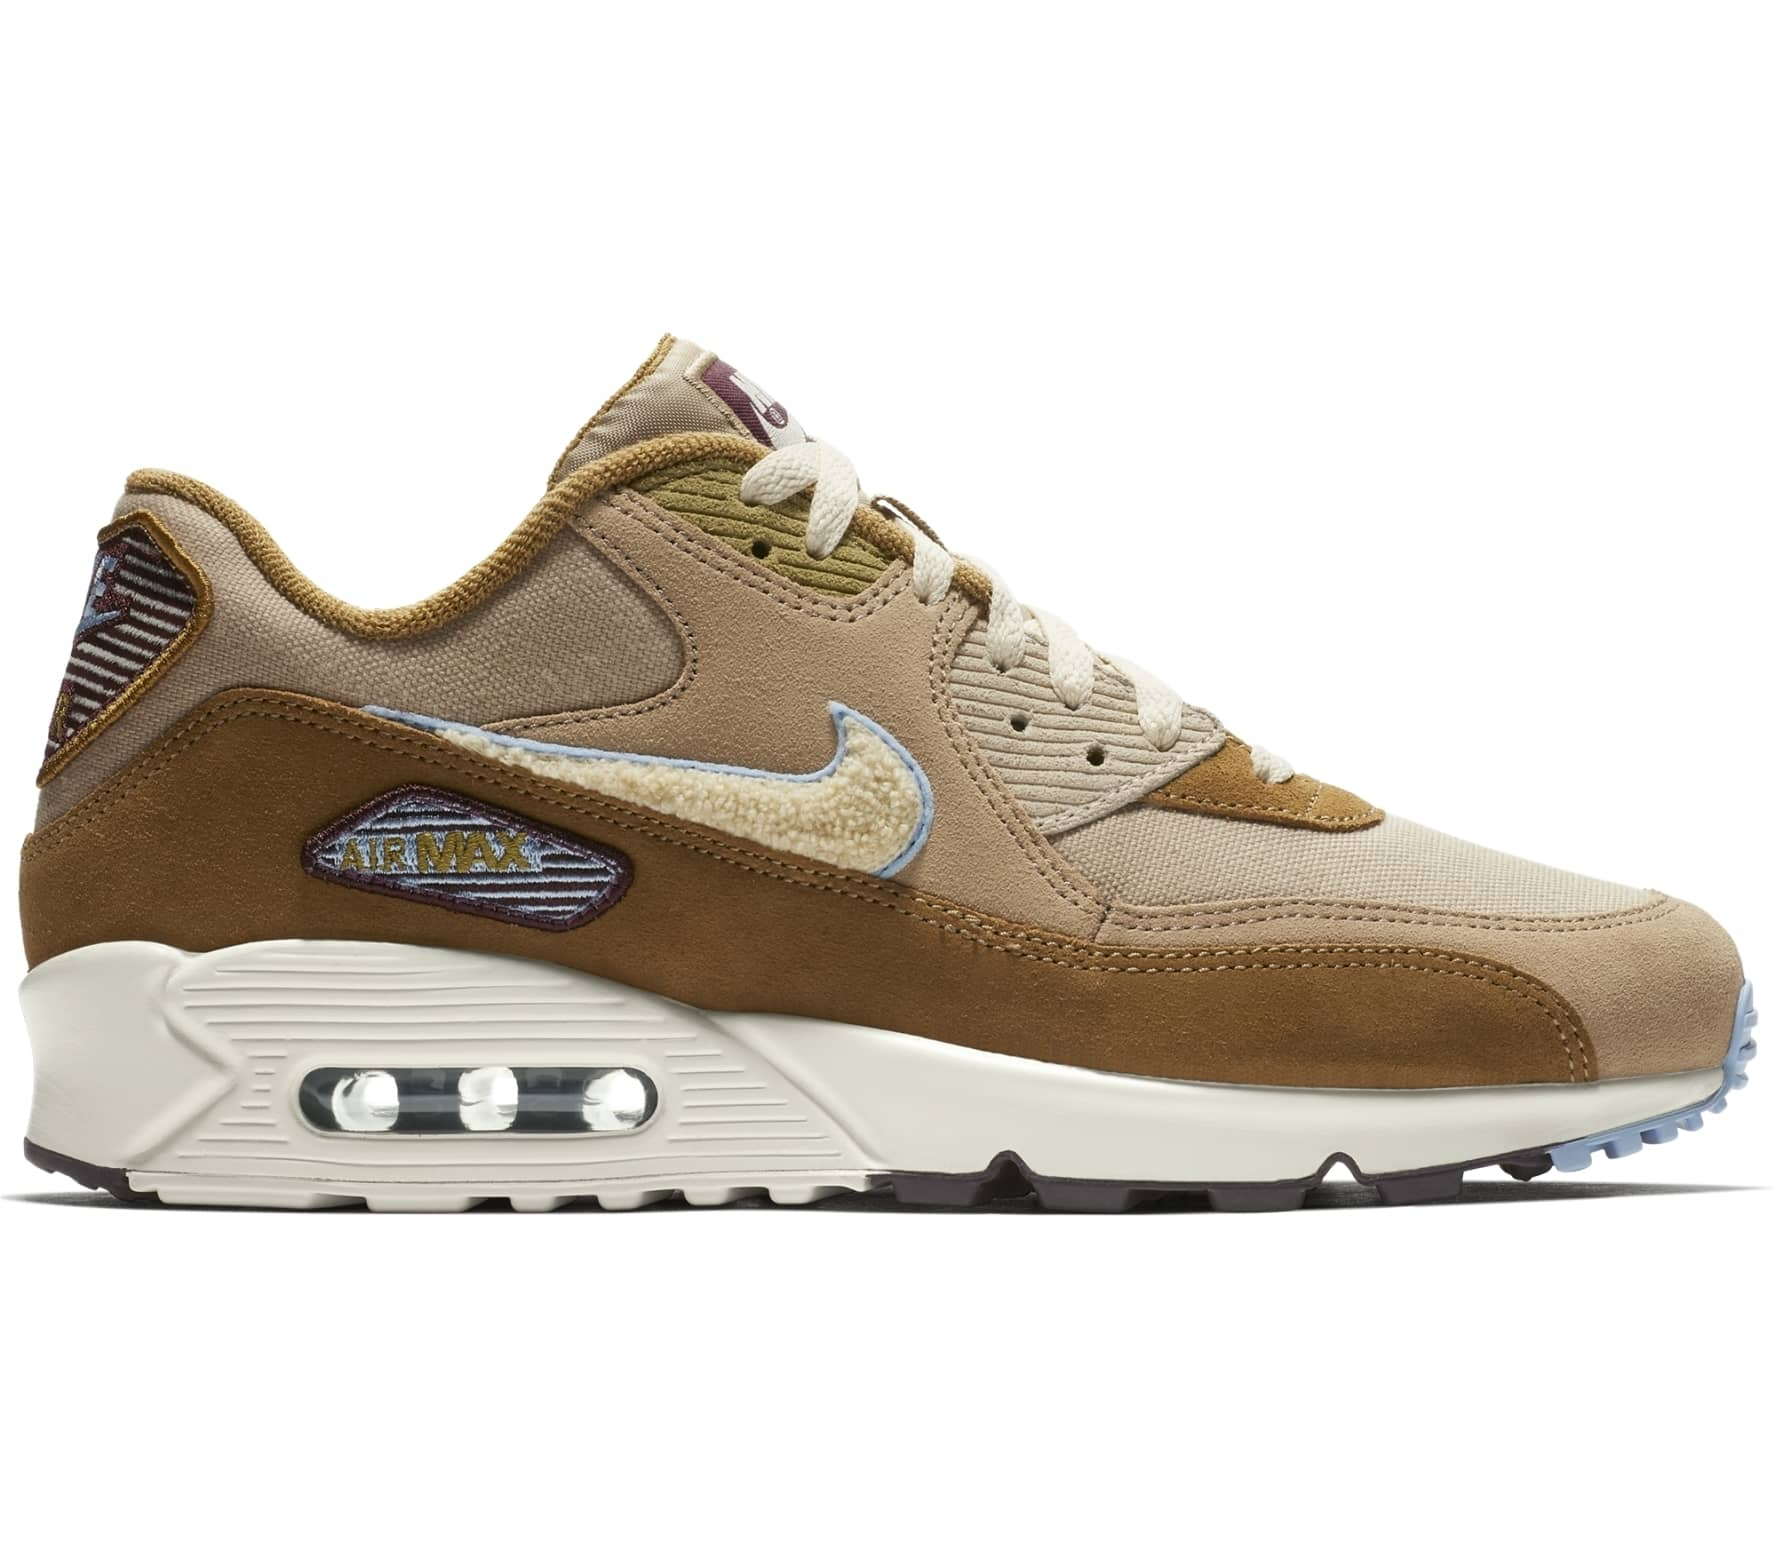 9b3b1eac8943 Nike Sportswear Air Max 90 Premium SE men s trainers (brown) online ...